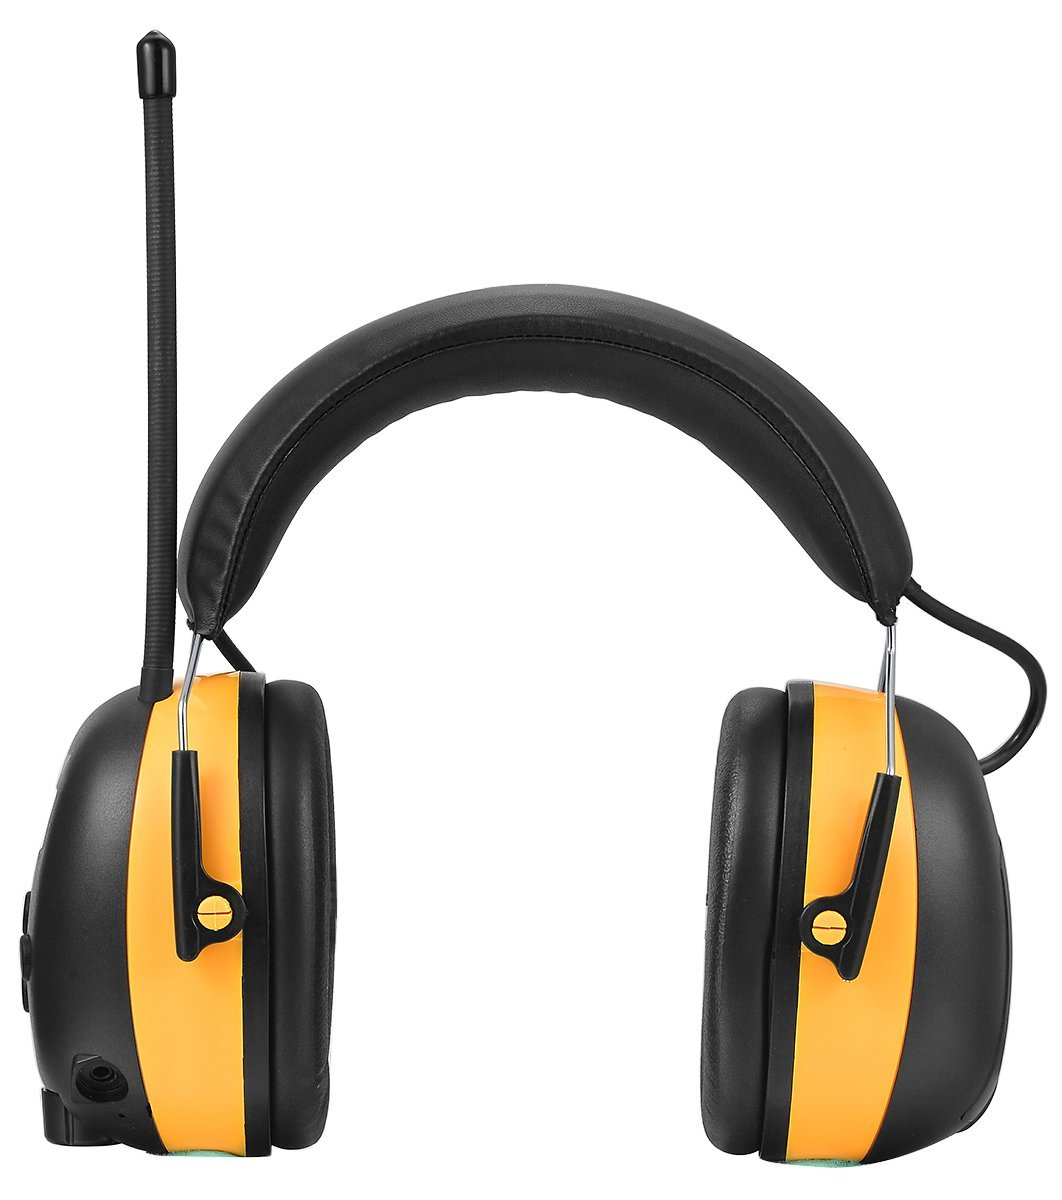 ZOHAN Digital AM/FM/MP3 Radio Earmuff, Noise Reduction Hearing Protector For Mowing, Snowmobiling, Sporting Events (Yellow) by ZOHAN (Image #2)